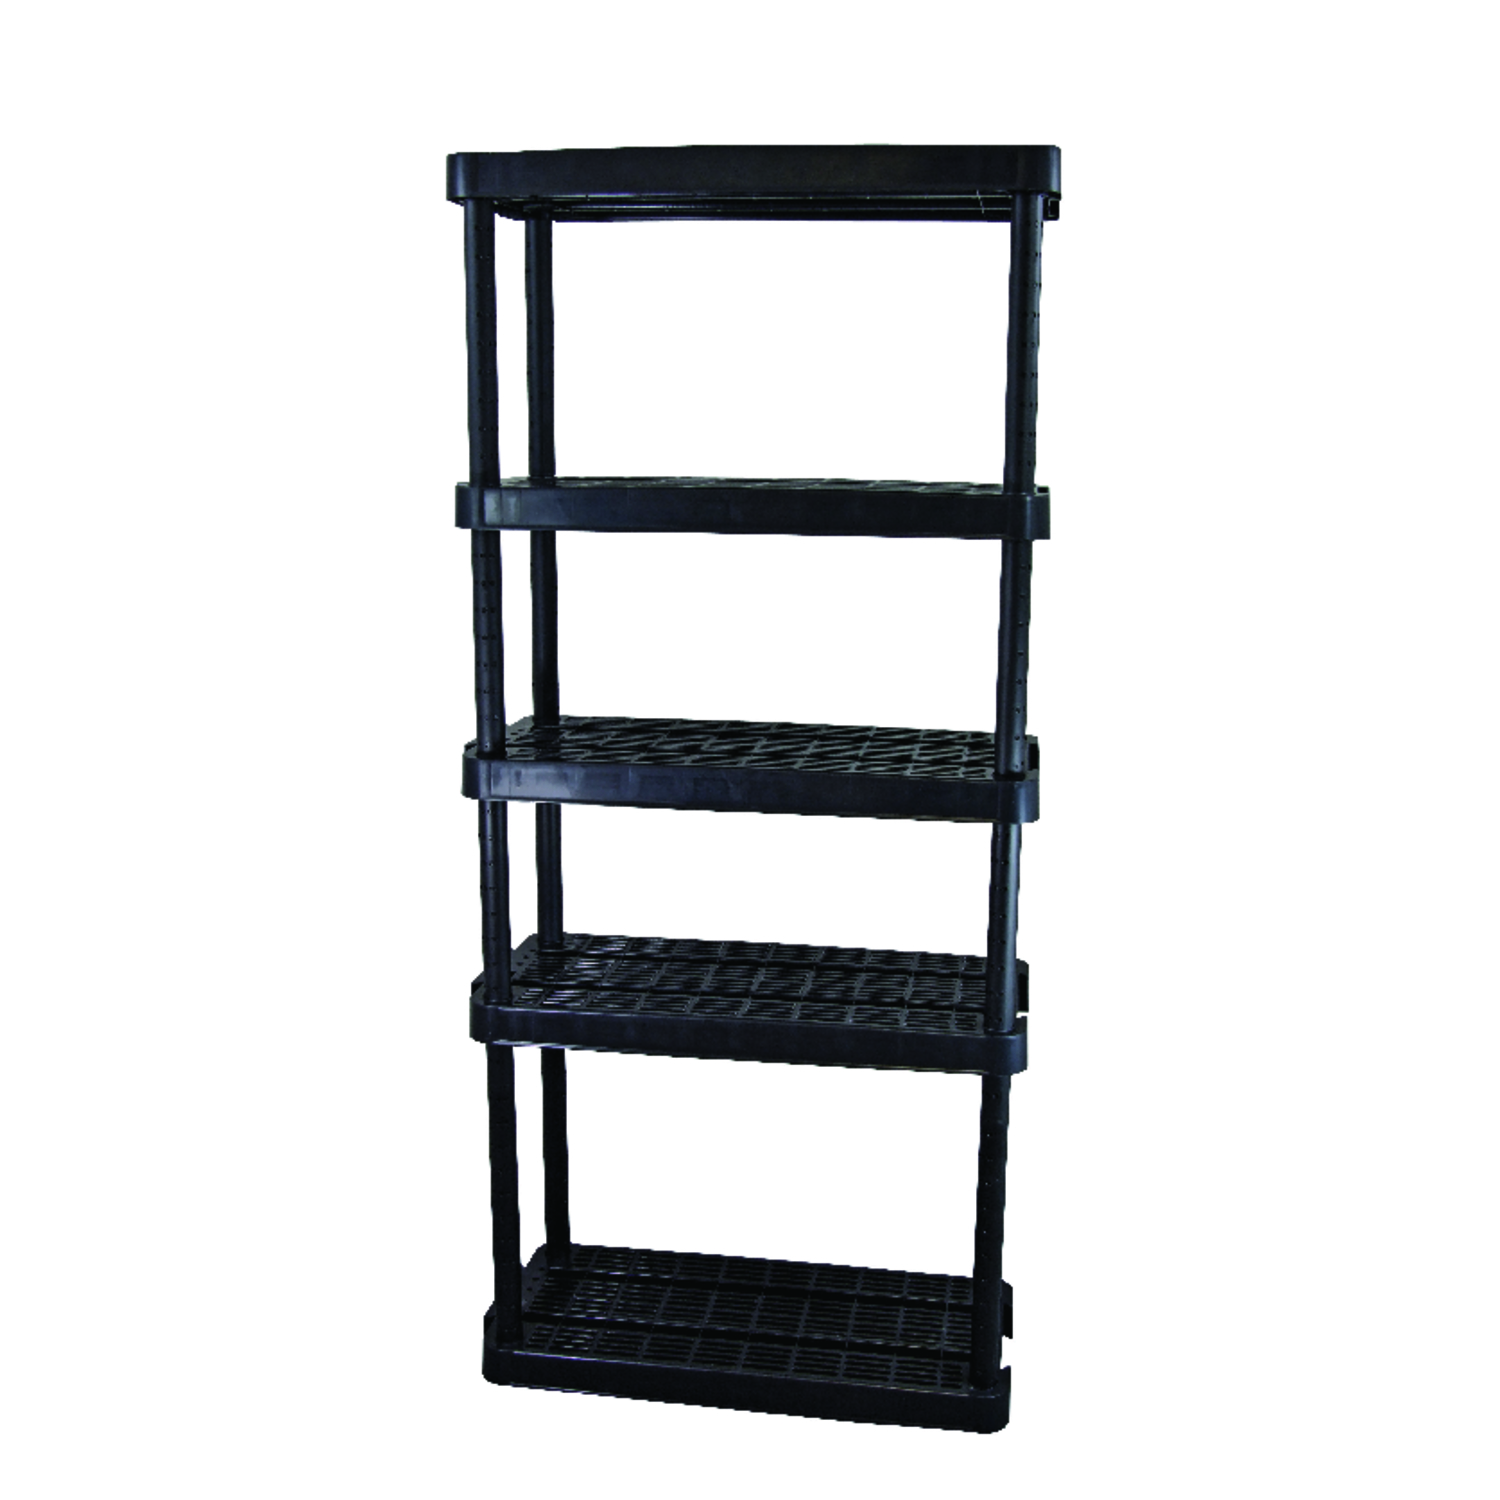 Maxit  32 in. W x 14 in. D x 72 in. H Shelving Unit  Resin